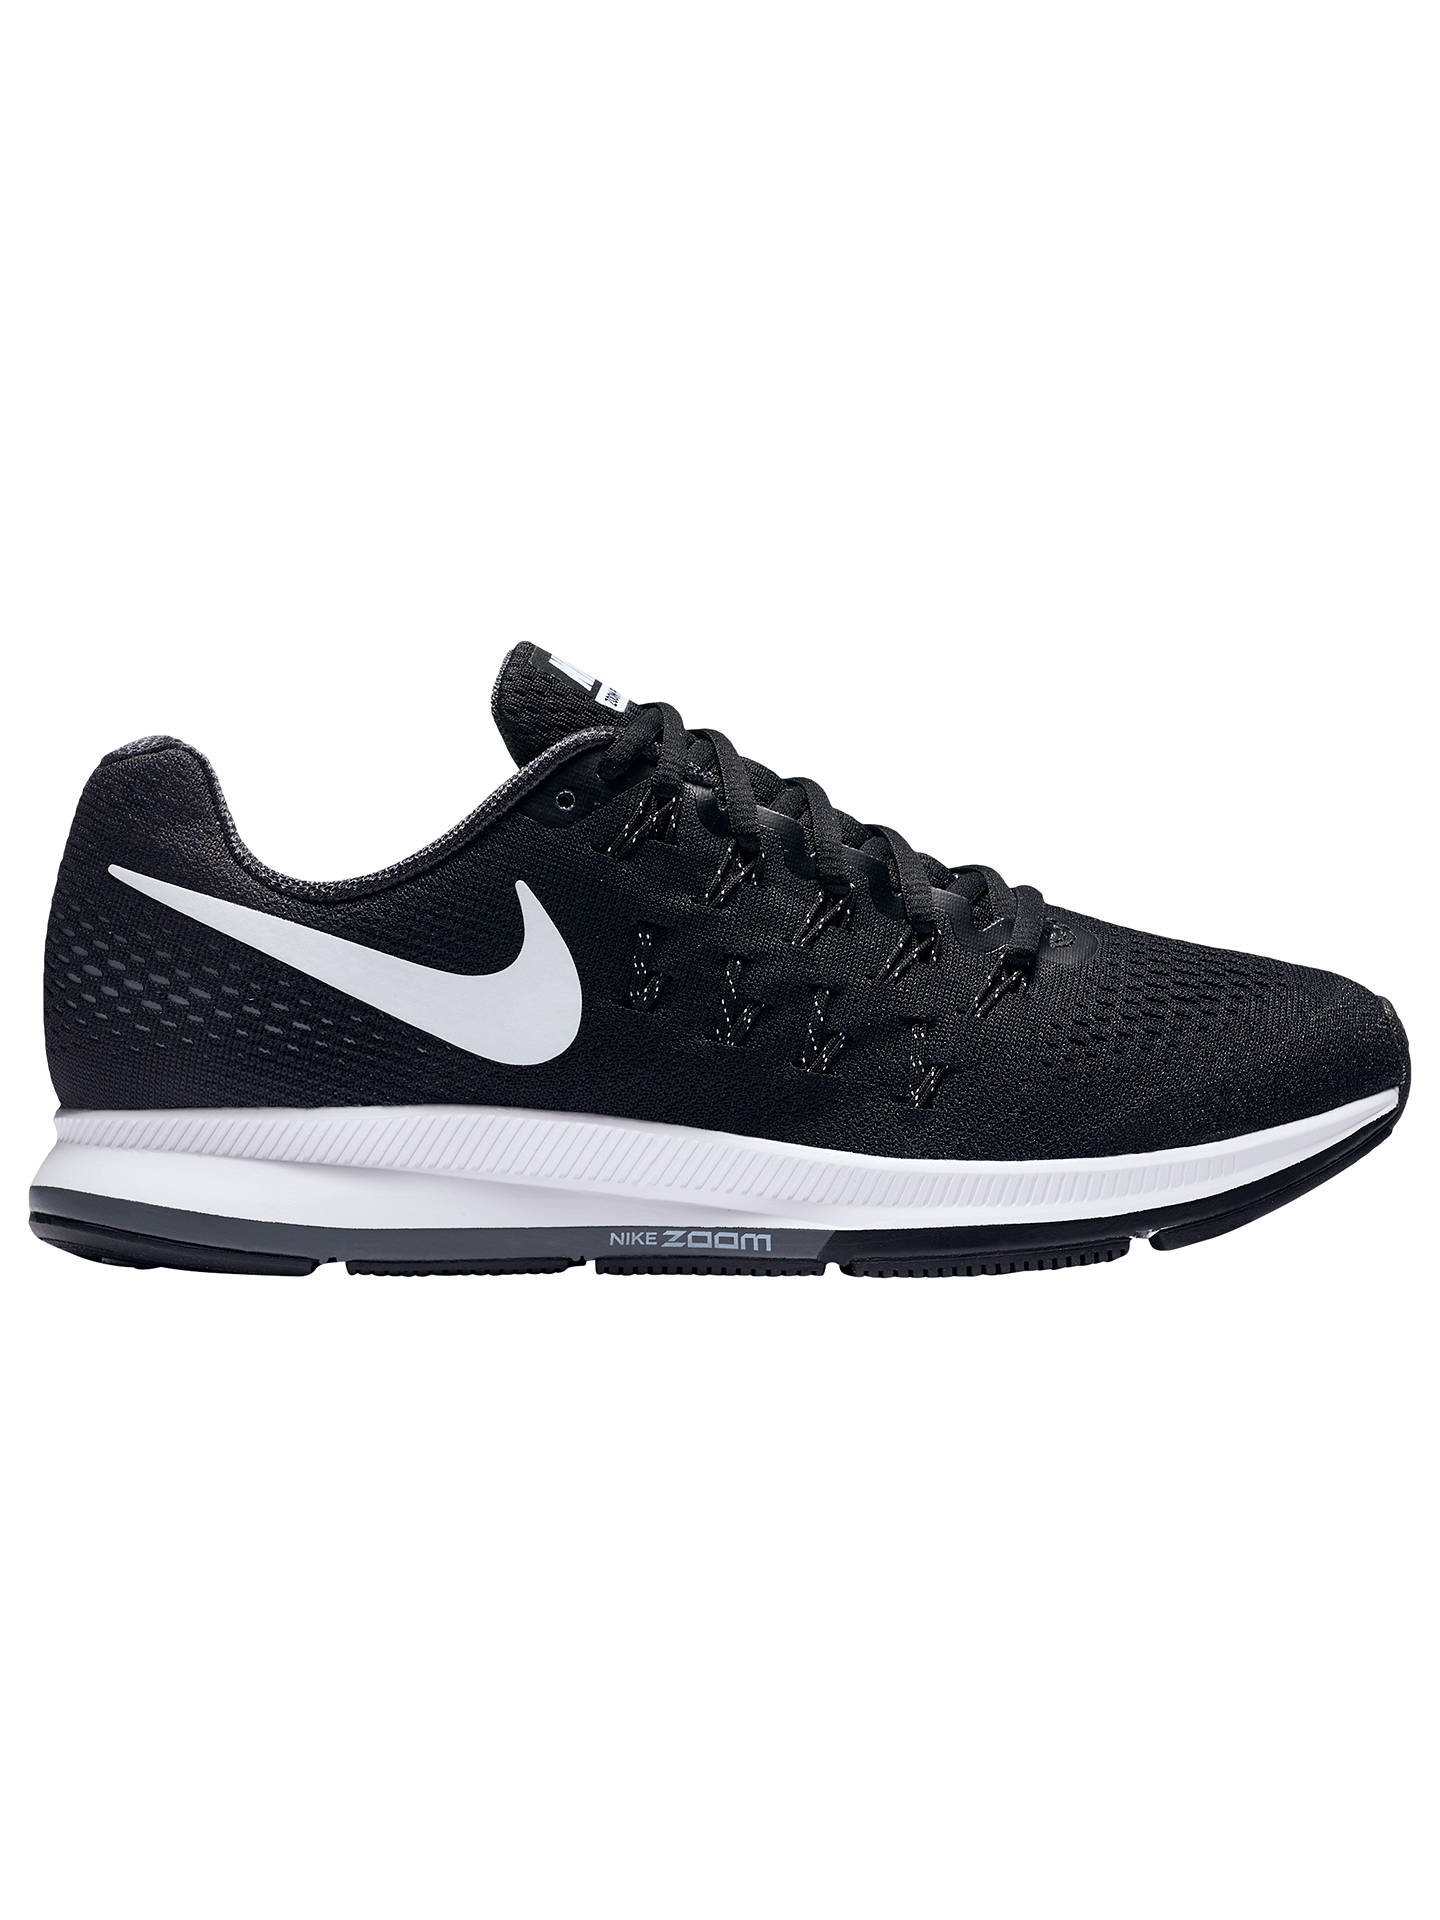 timeless design 69552 62d32 Nike Air Zoom Pegasus 33 Women's Running Shoes at John Lewis ...